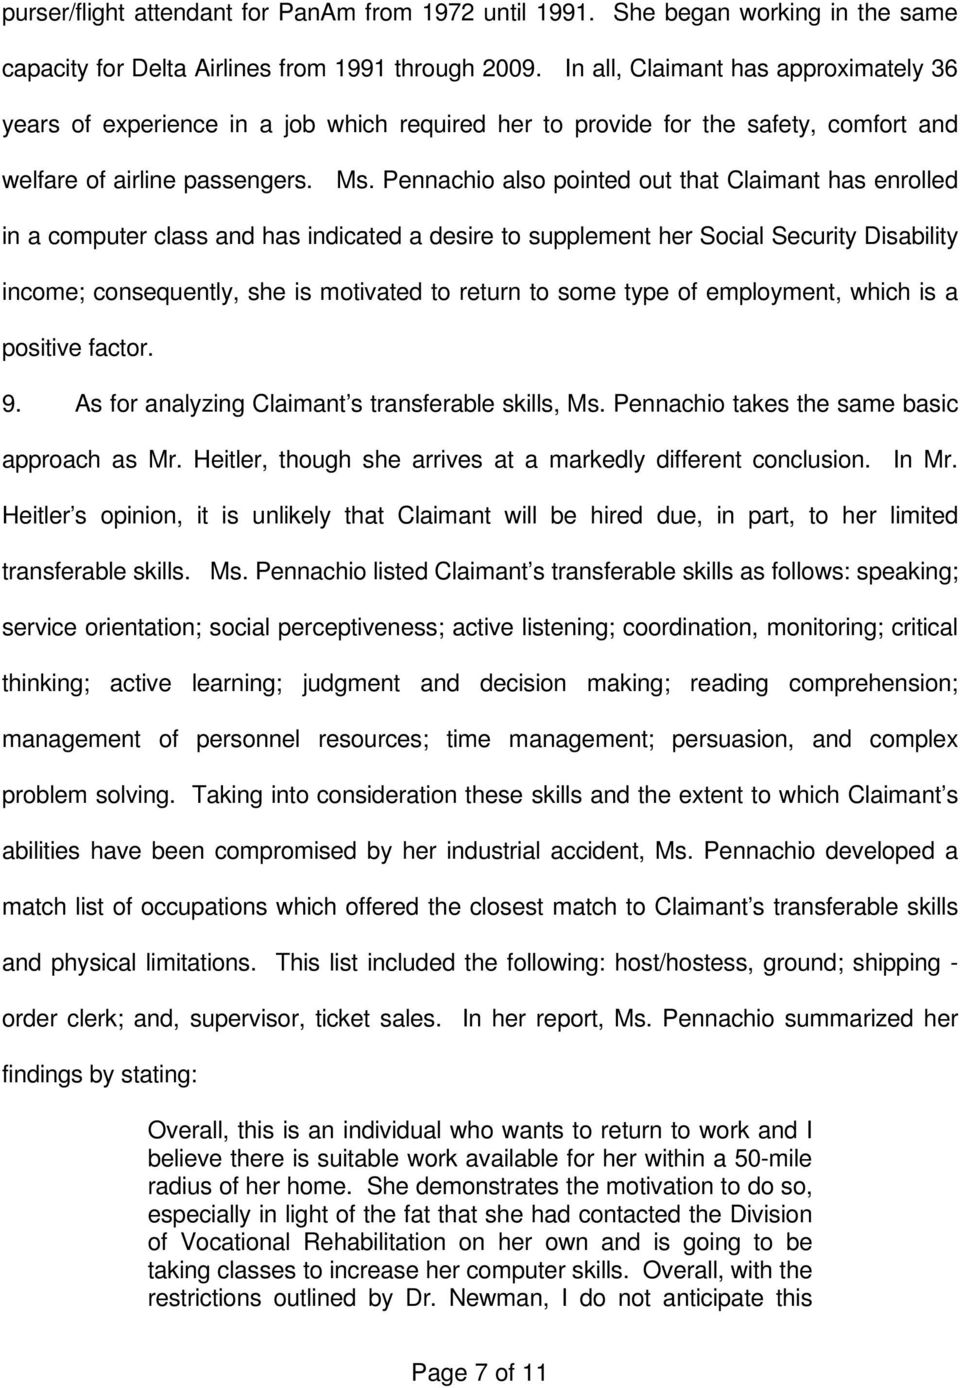 Pennachio also pointed out that Claimant has enrolled in a computer class and has indicated a desire to supplement her Social Security Disability income; consequently, she is motivated to return to